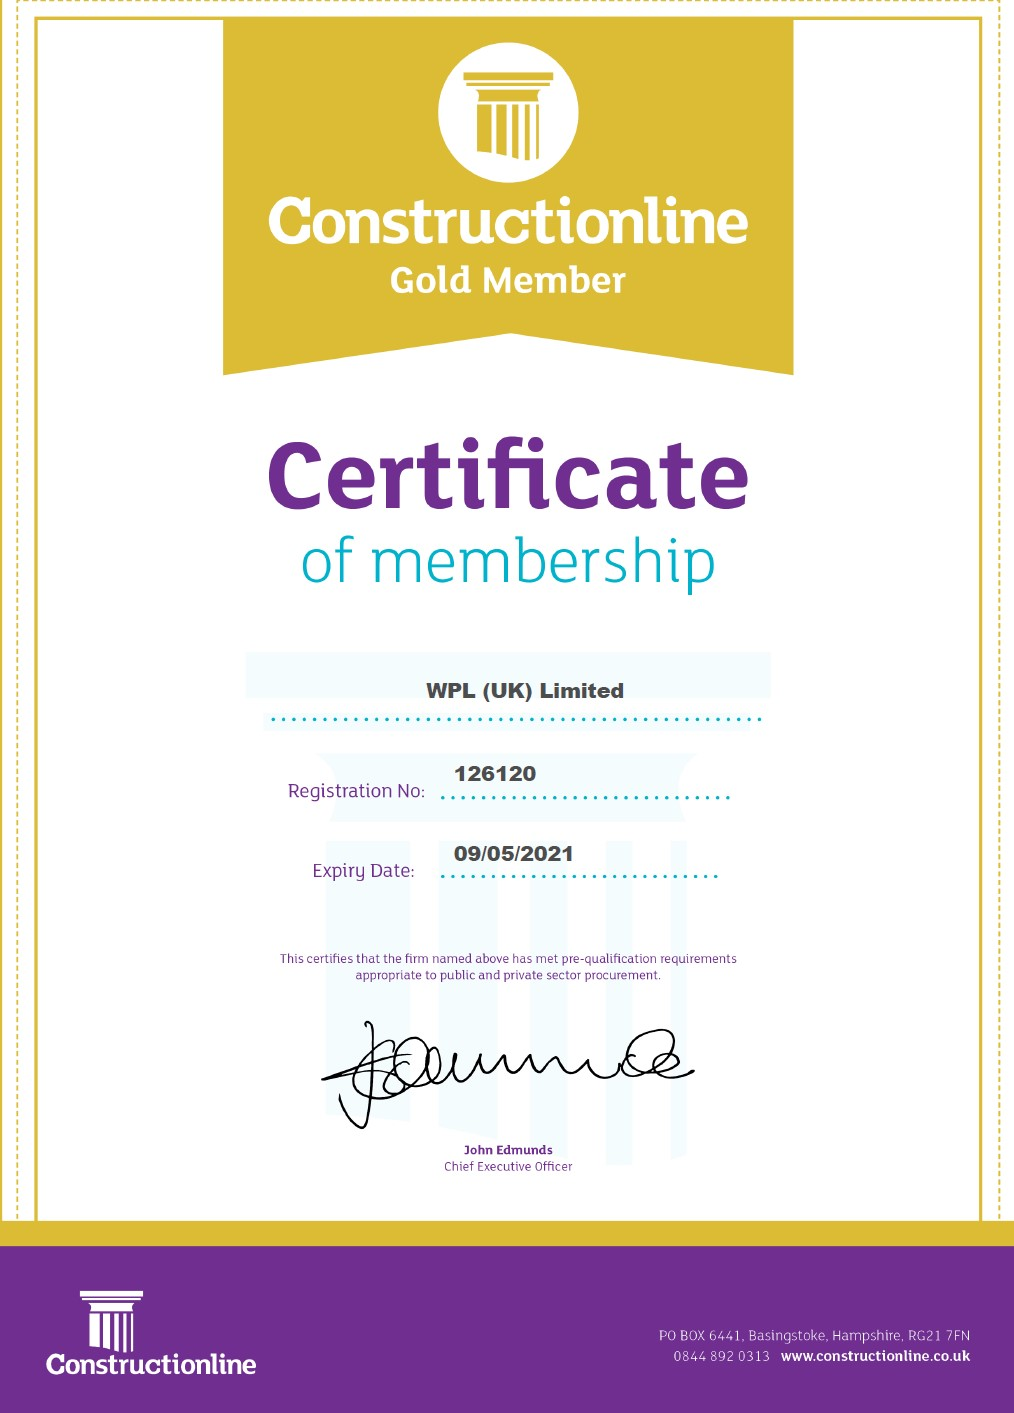 WPLUK Constructionline GOLD Certificate to 9th May 2021